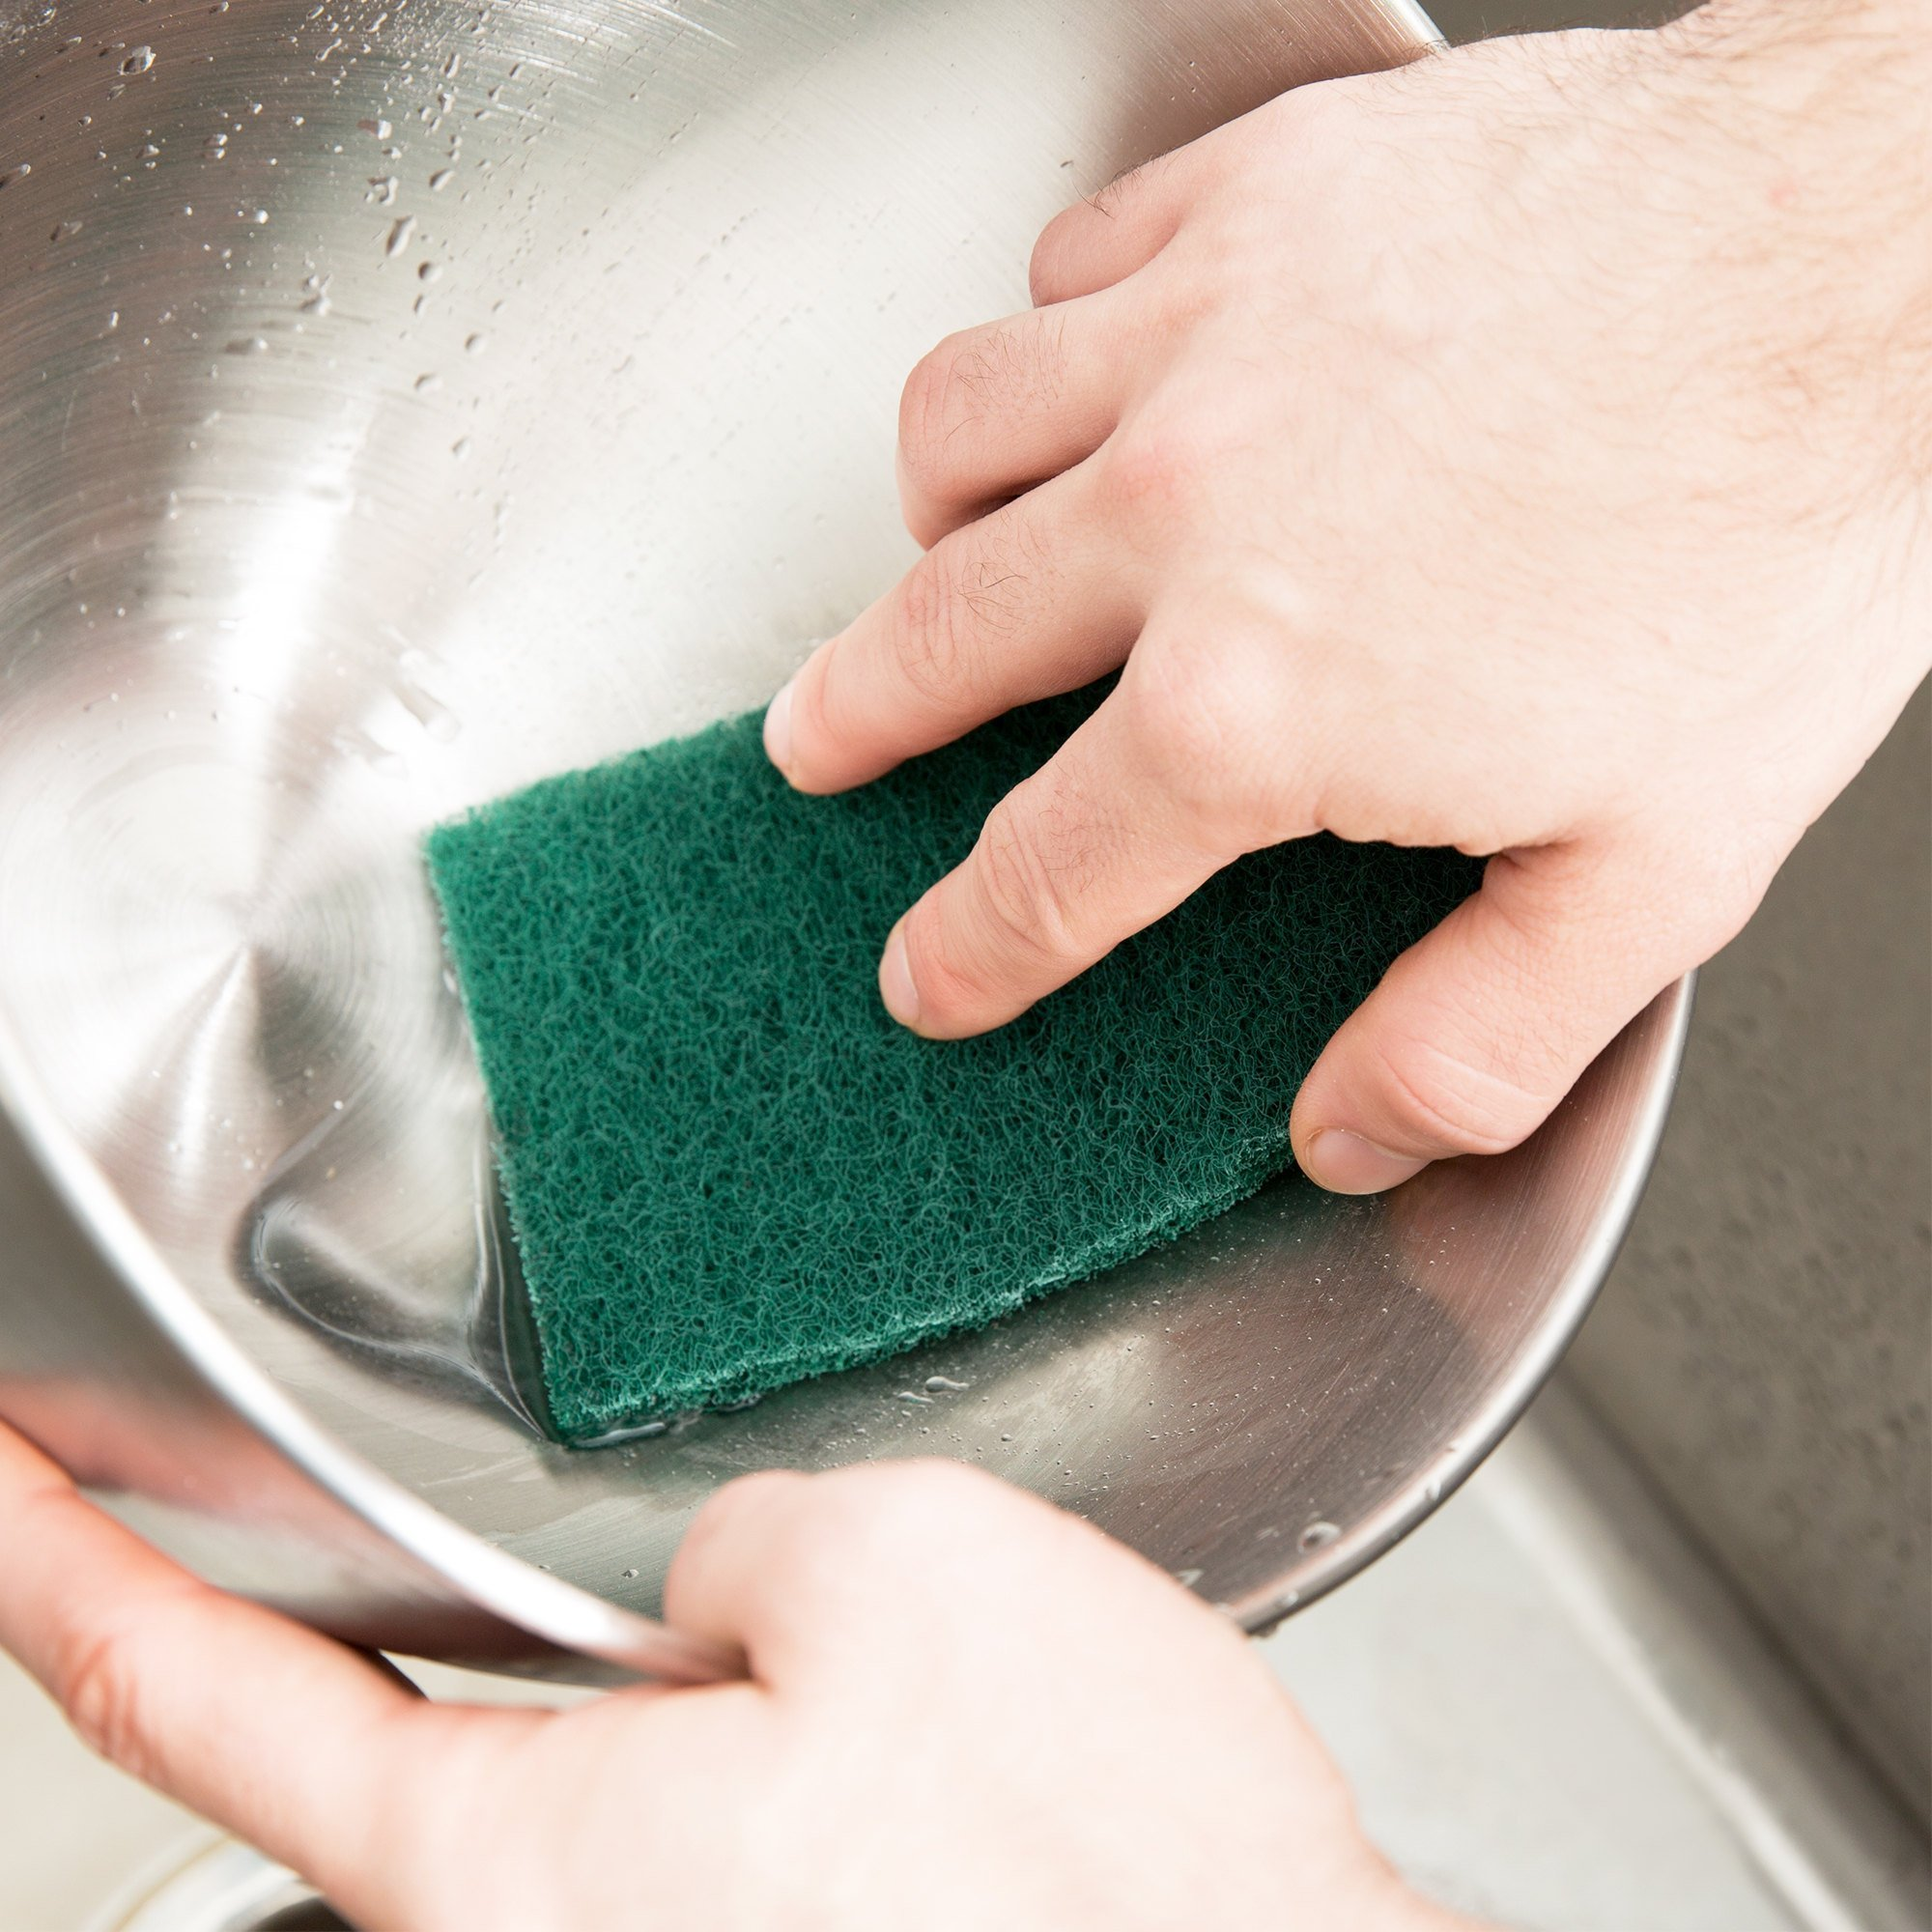 HeRO Dish Scrubber Scouring Pads - Household Scrub Pads for Stove Top Cleaner and Kitchen Scrubbers for Dishes, Cuts Solvents & Greasy Messes, Green 4.5 x 6 inch (Pack of 40)          by HERO IMPORTS (Image #5)